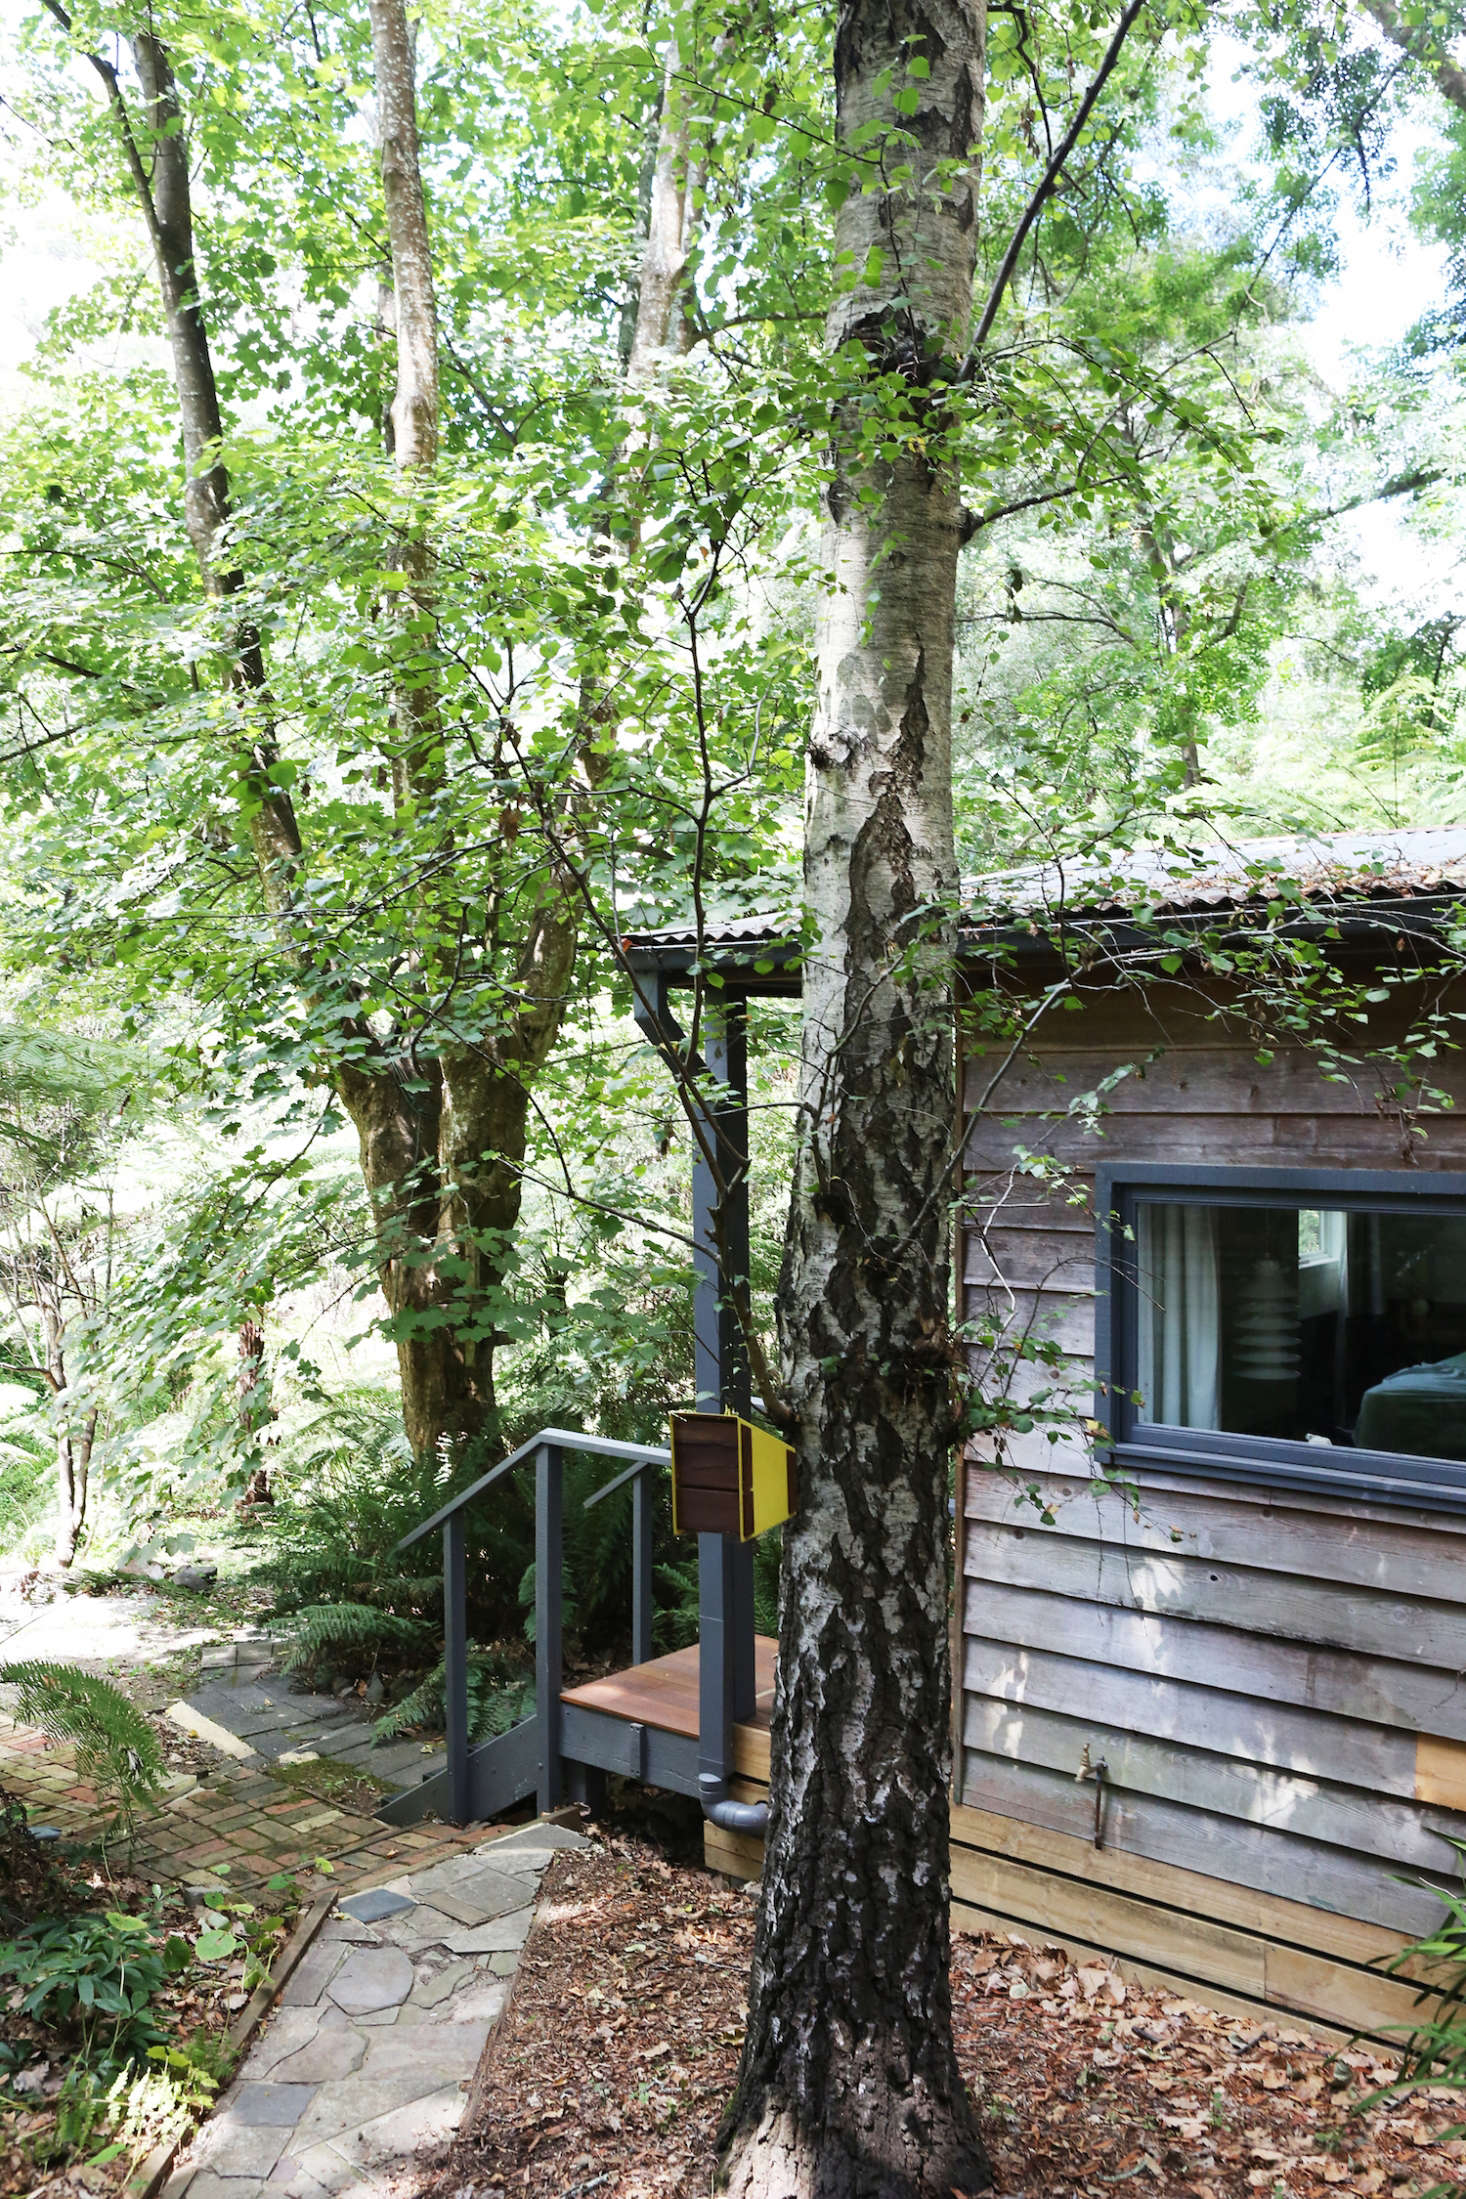 The guest house was built in the early th century and was recently remodeled by Sarah Trotter of Hearth Studio.Here, a silver birch tree offers residency forwildlife.